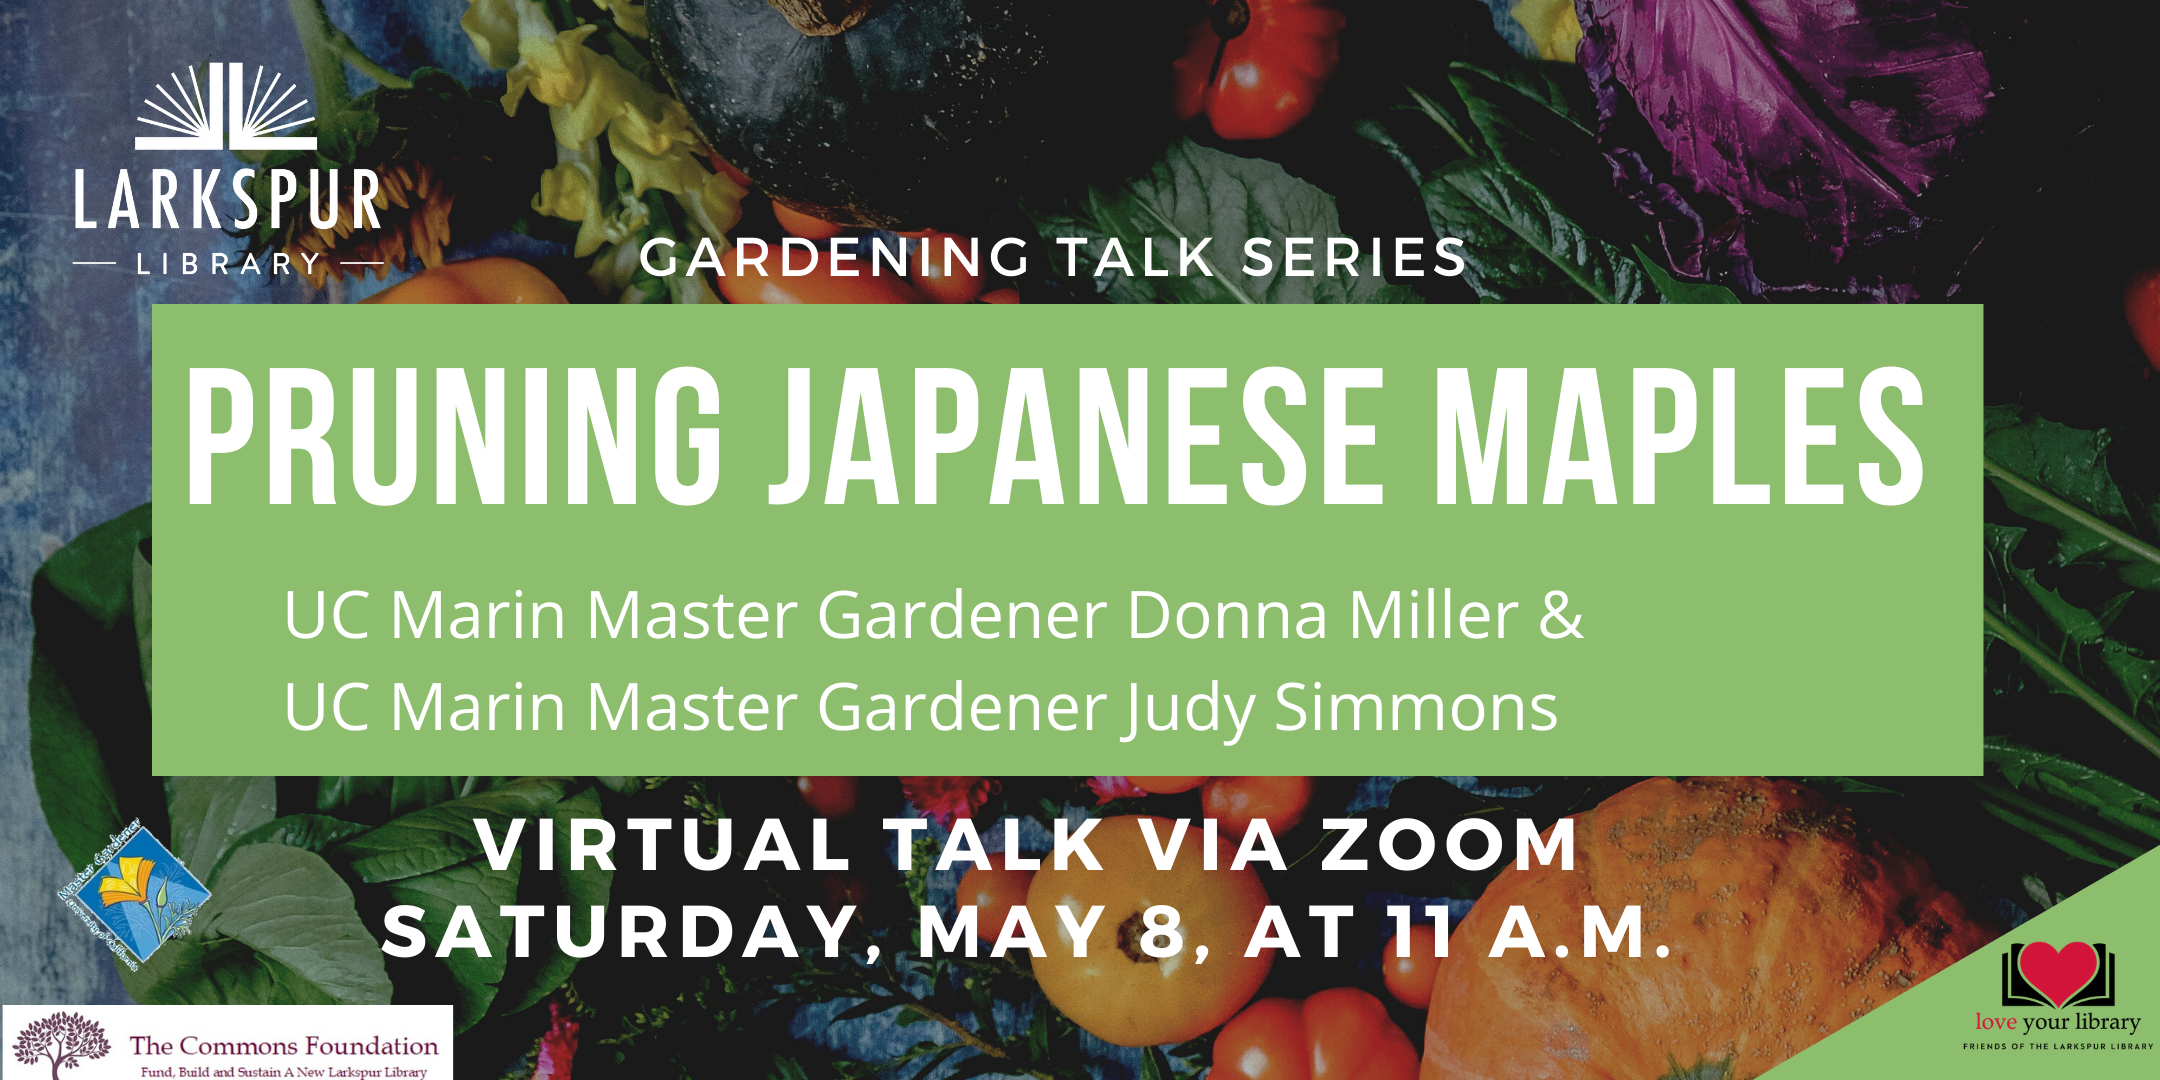 Pruning Japanese Maples with UC Marin Master Gardeners on May 8 at 11 am